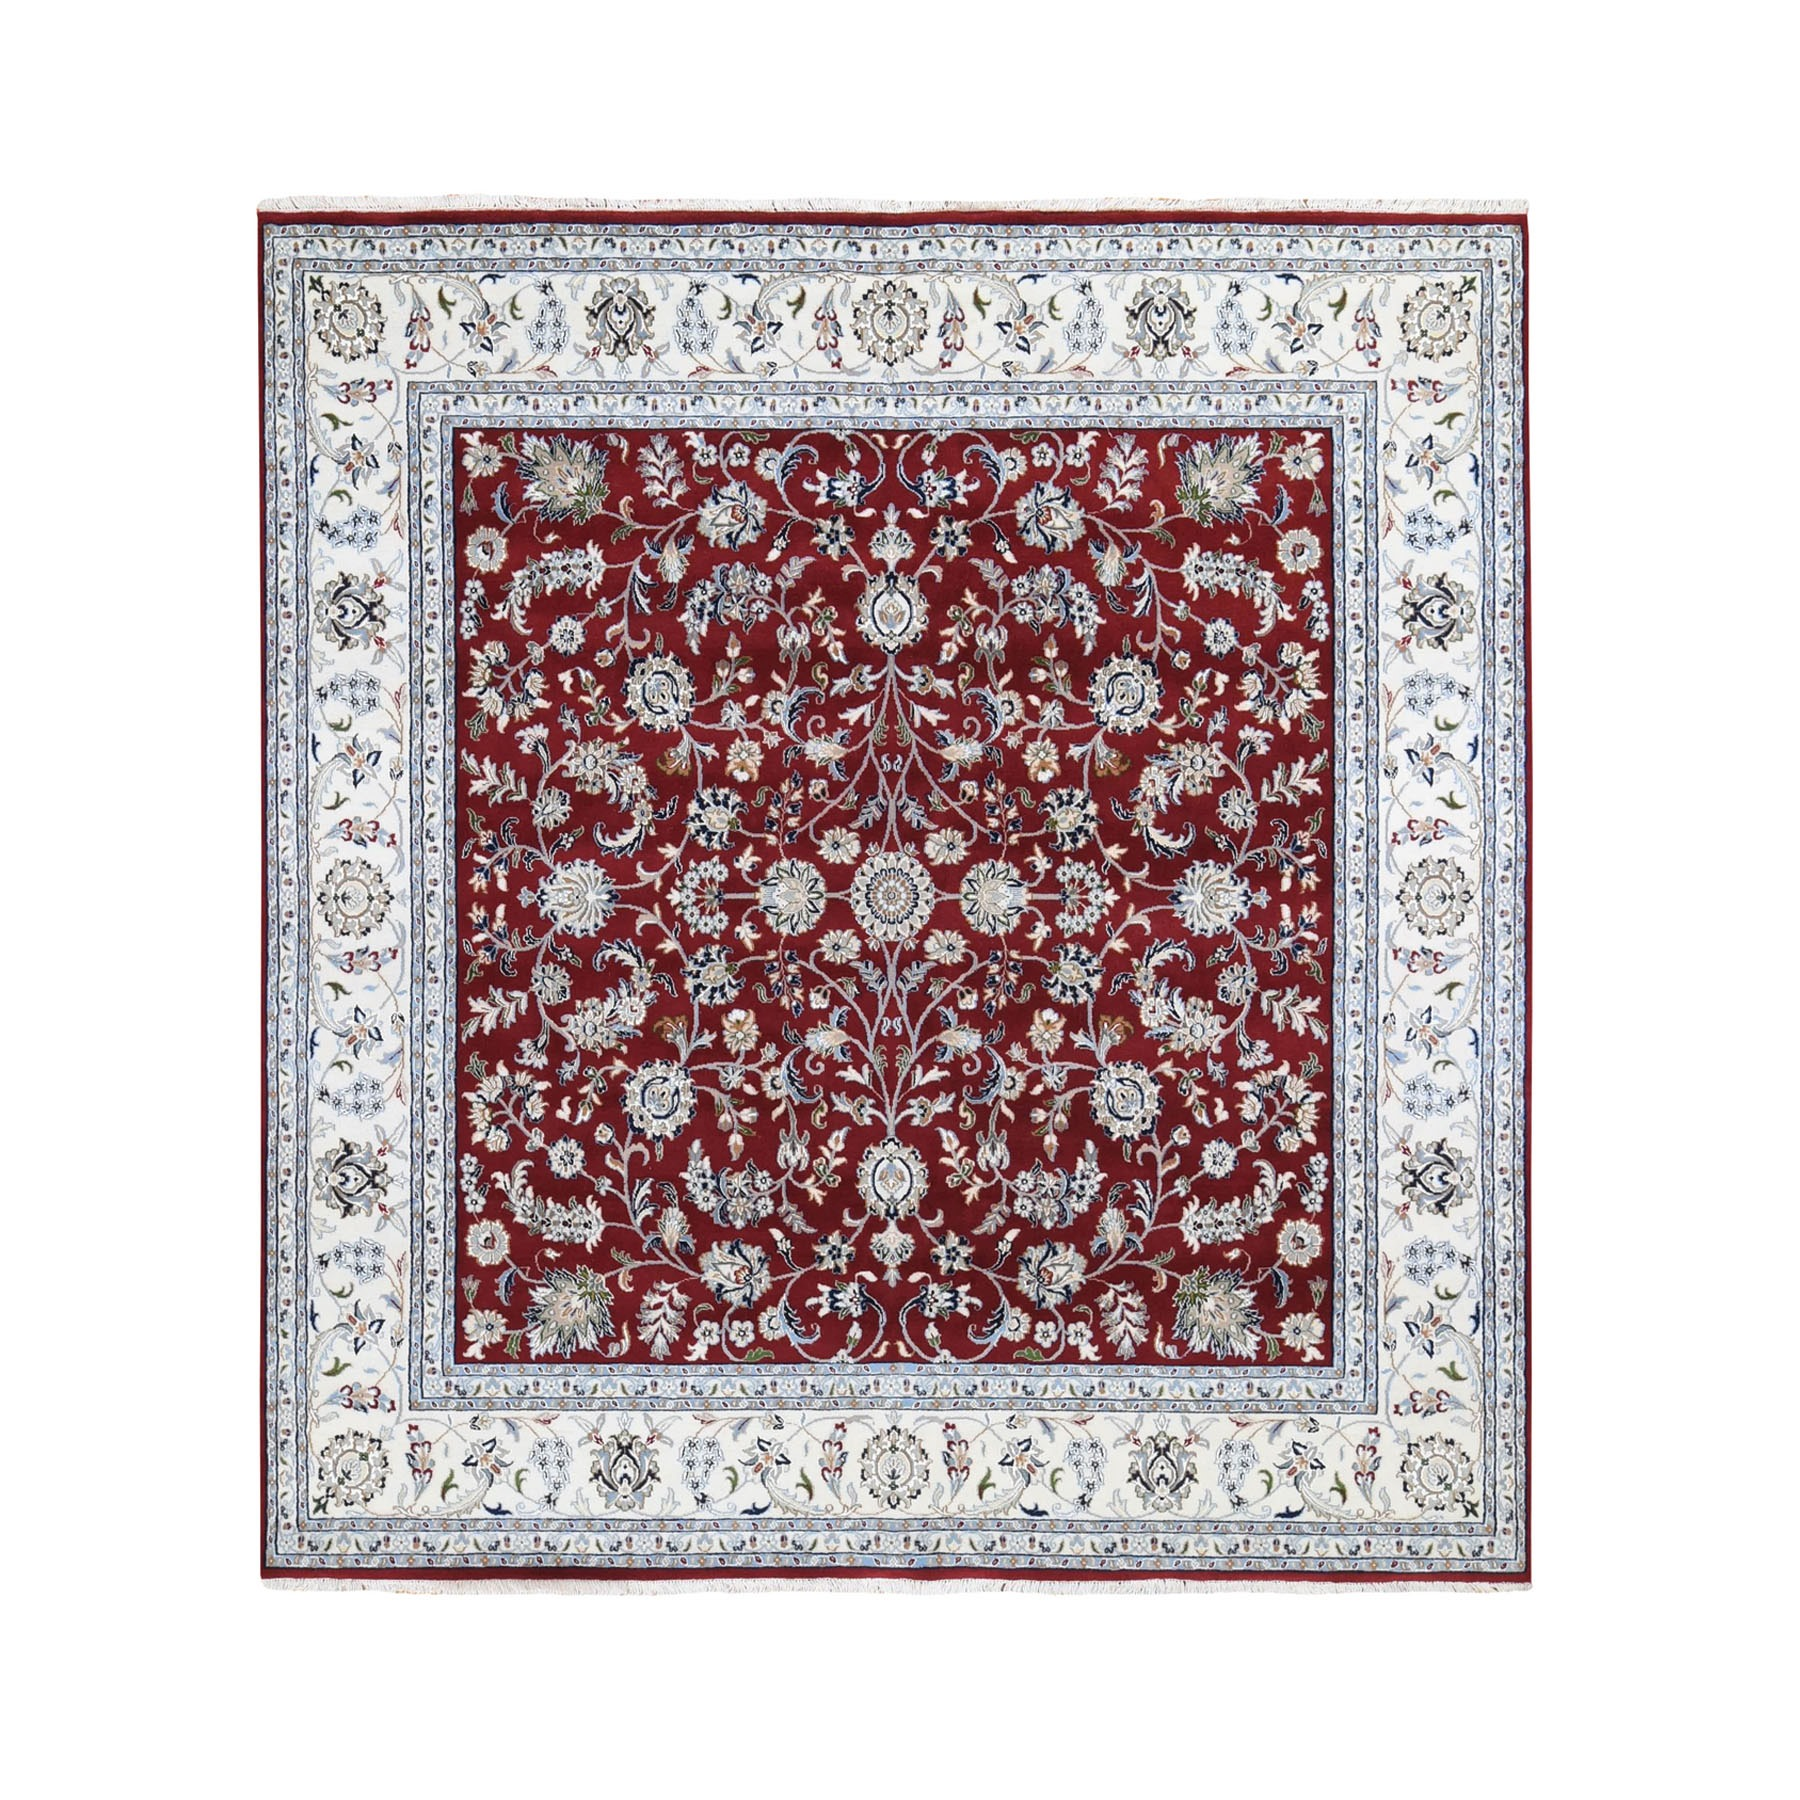 Pirniakan Collection Hand Knotted Red Rug No: 195656